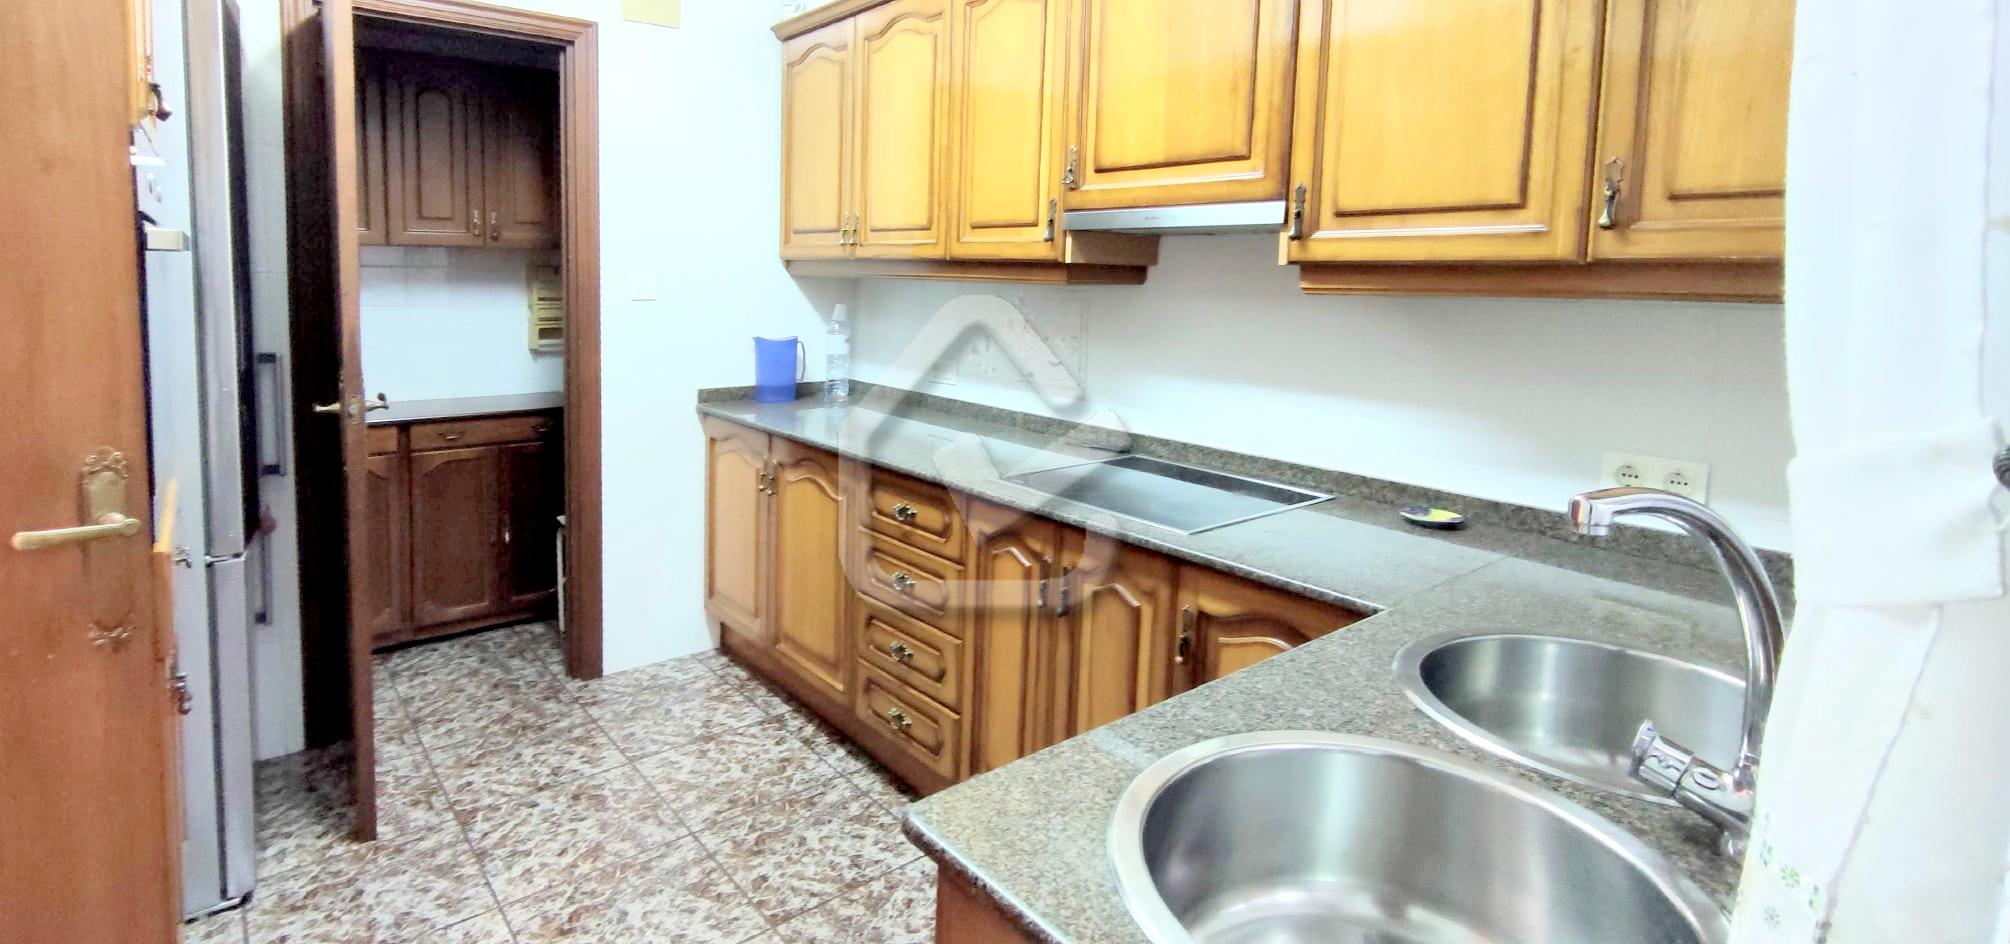 Photo  number 8: Flat / Apartment in Sale in Denia, Area Casco urbano, Sector Centro. Ref. 5-40-14951